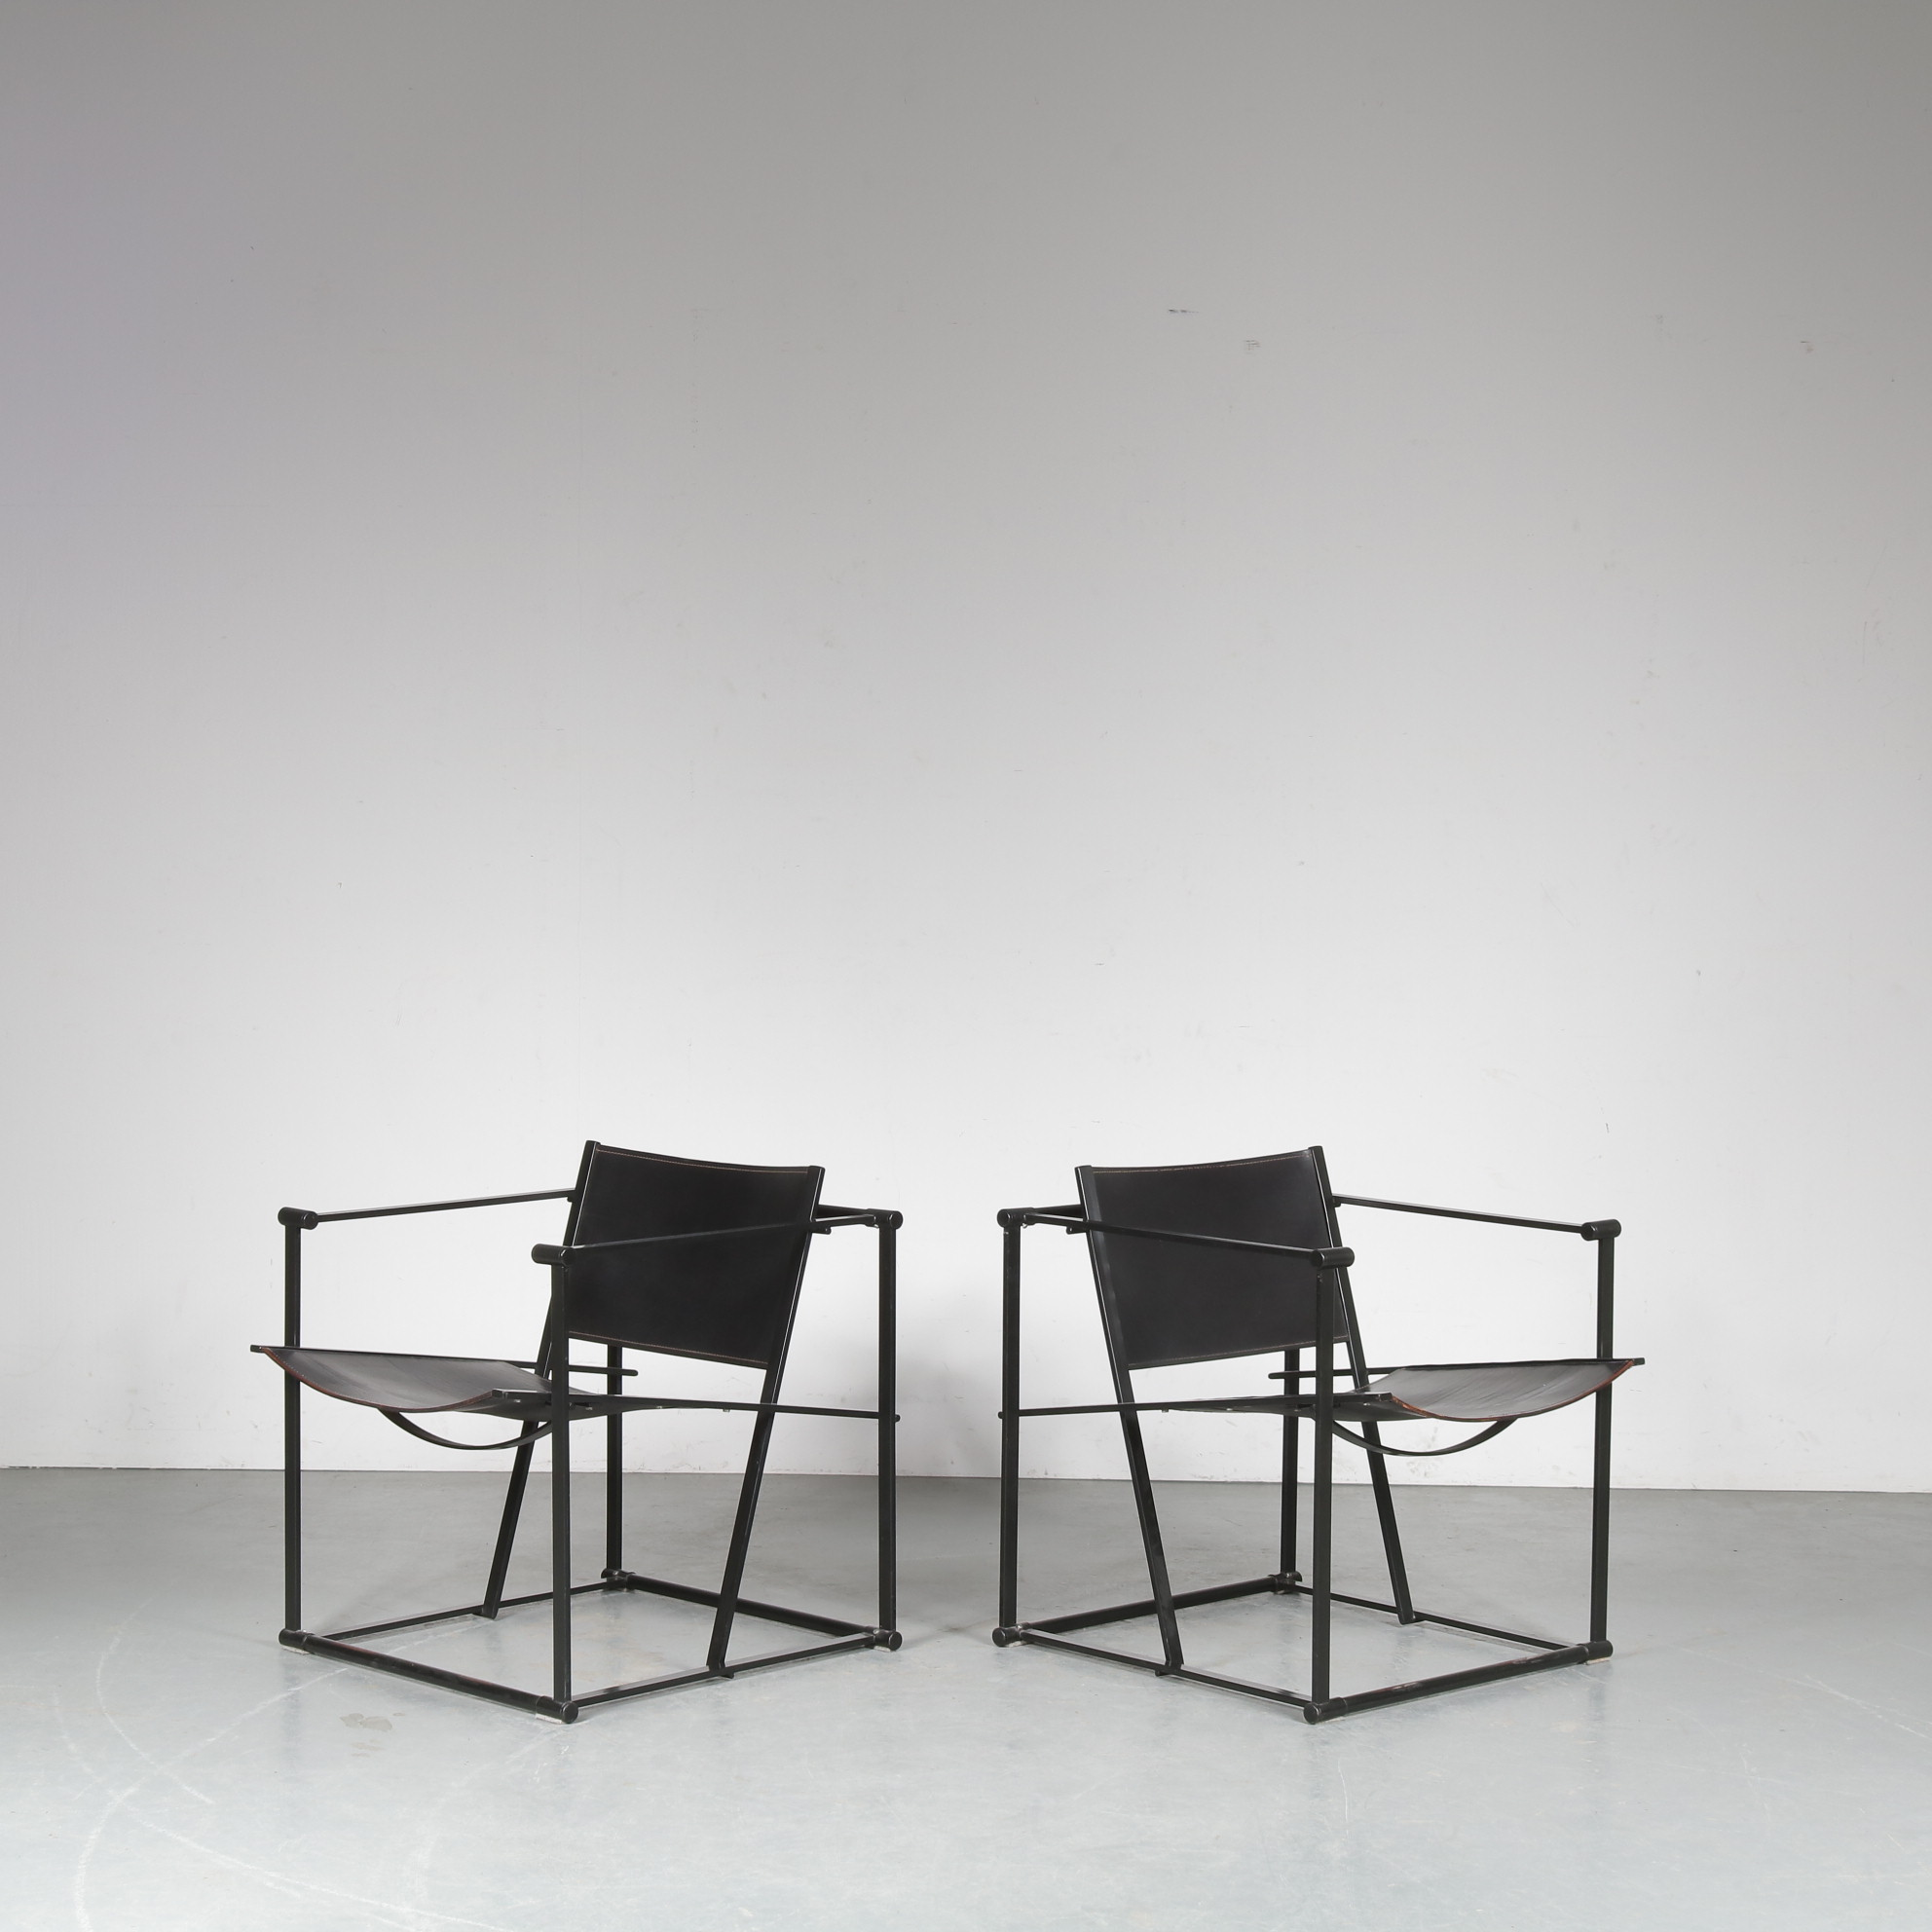 m25041 1980s Pair of Cubic FM60 Chairs by Radboud van Beekum for Pastoe, Netherlands